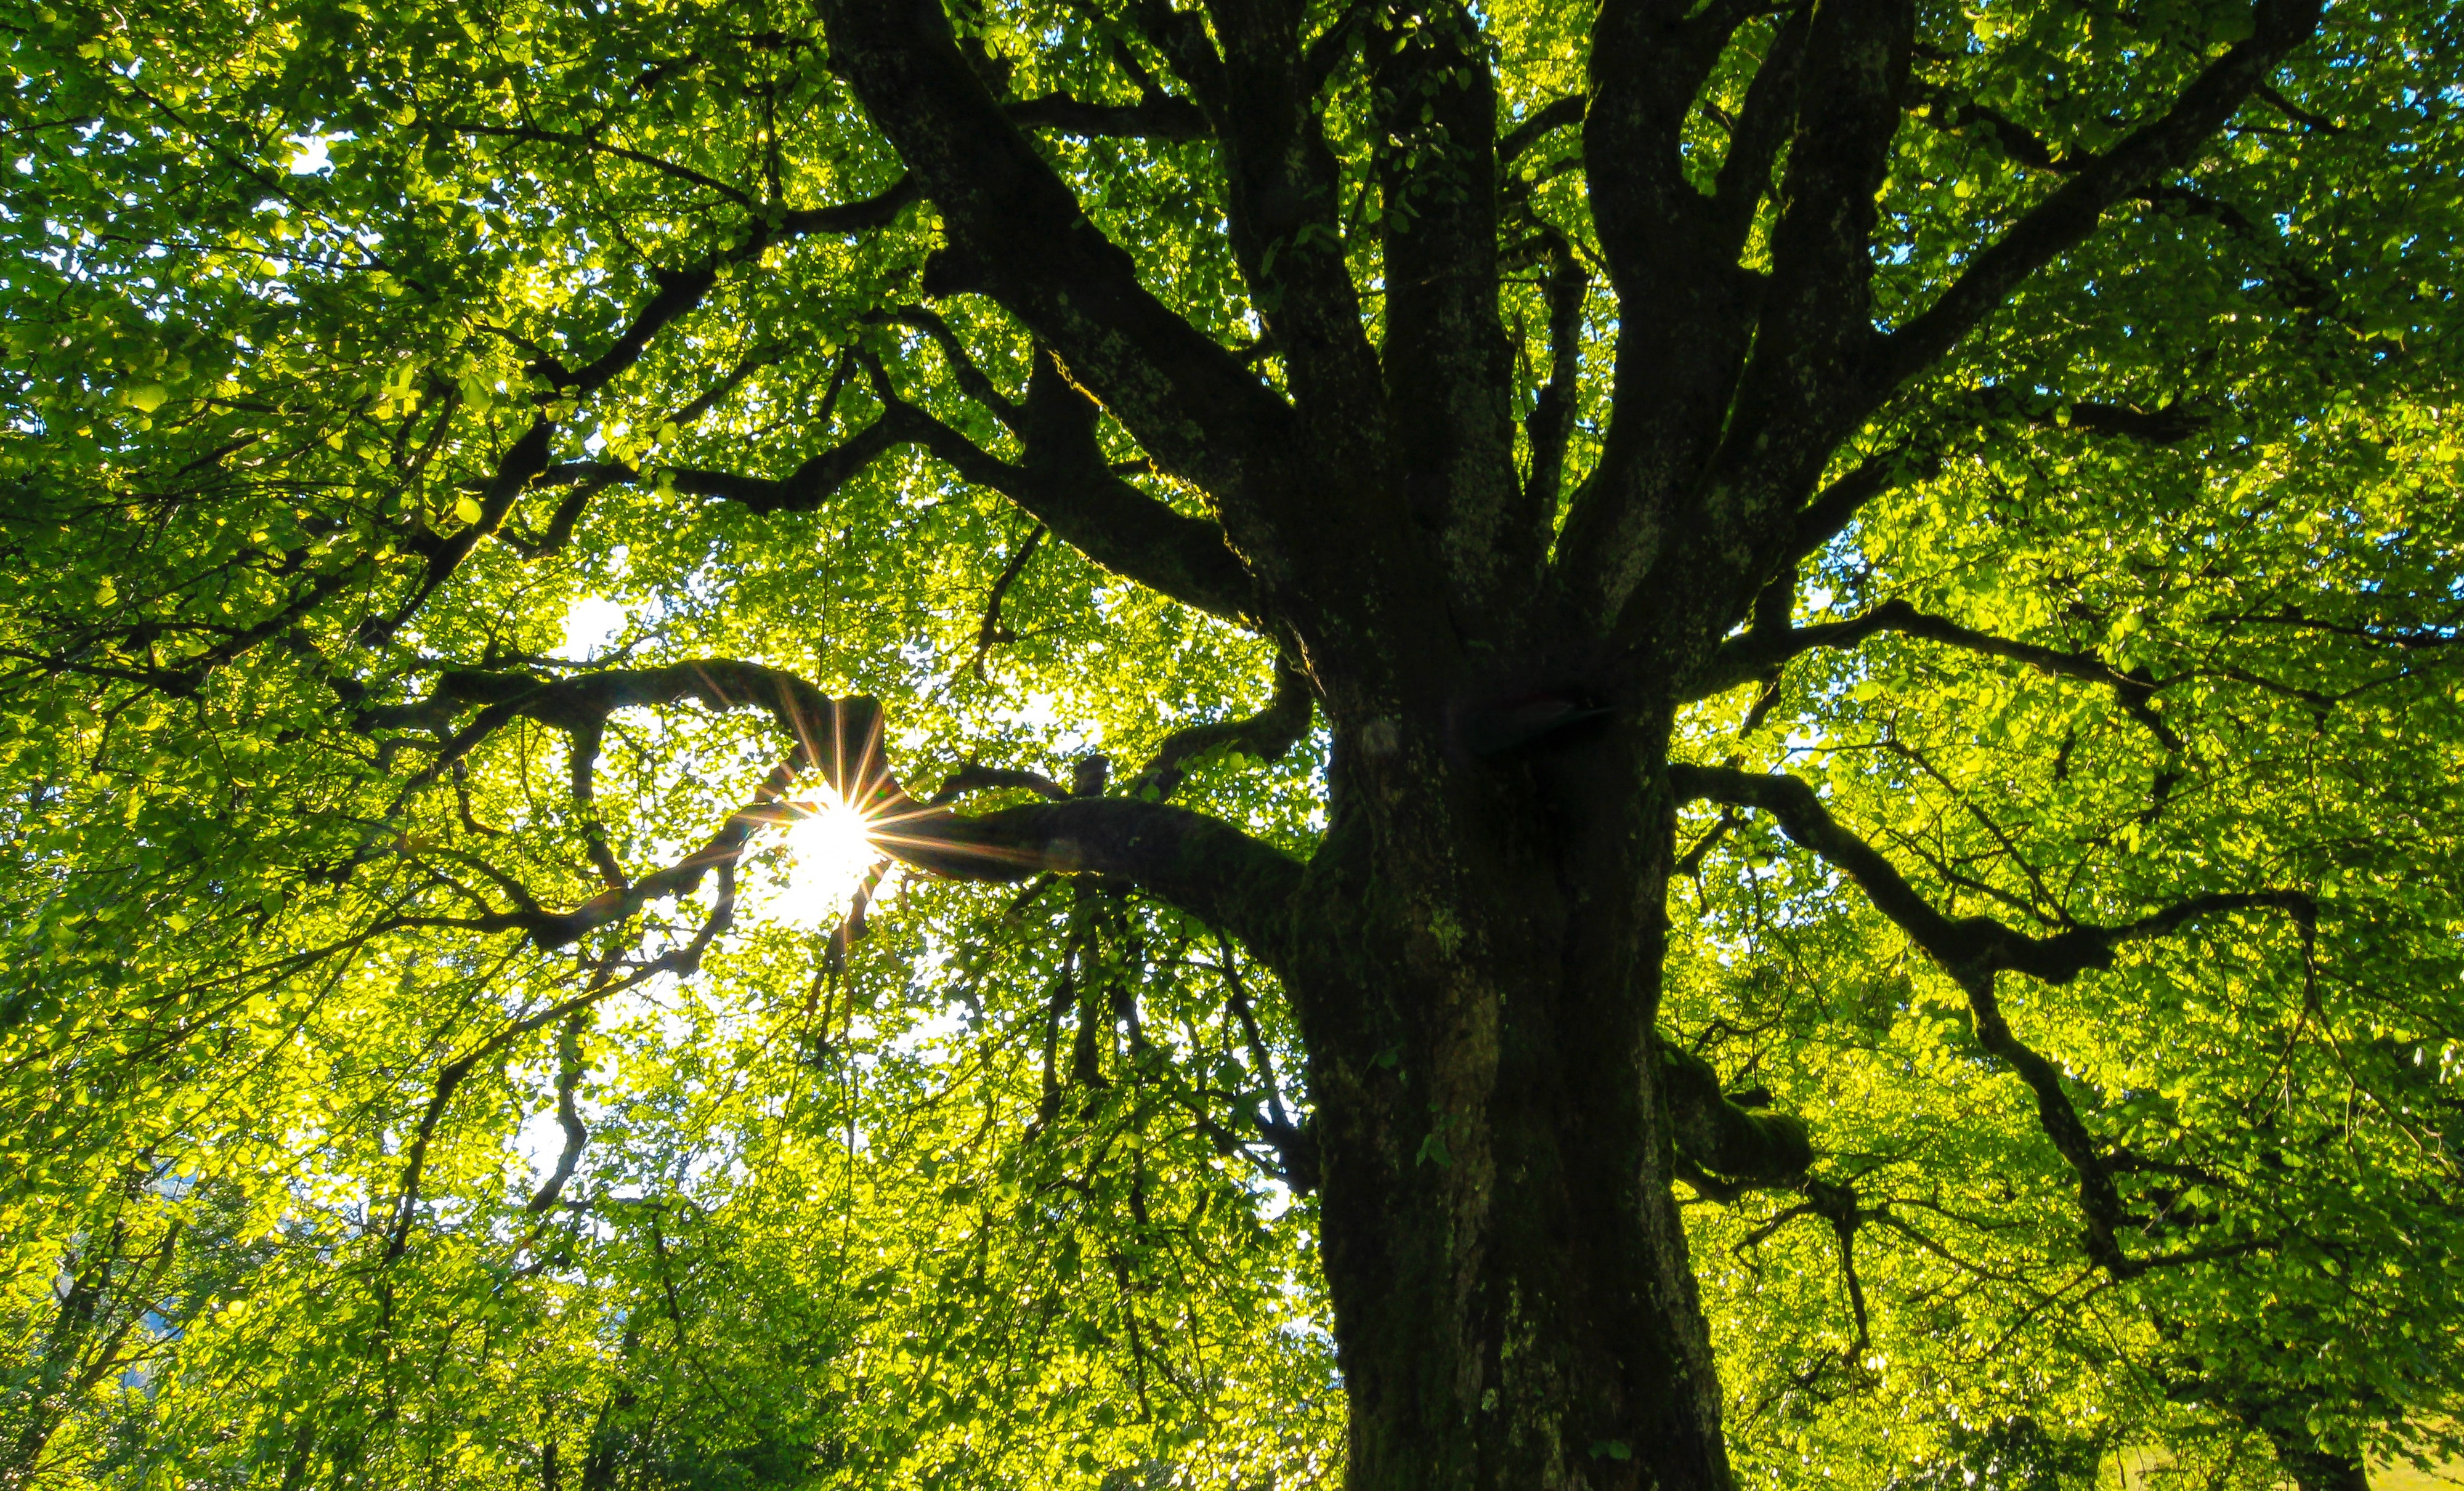 beautiful spreading live oak tree with sunlight shining through leaves